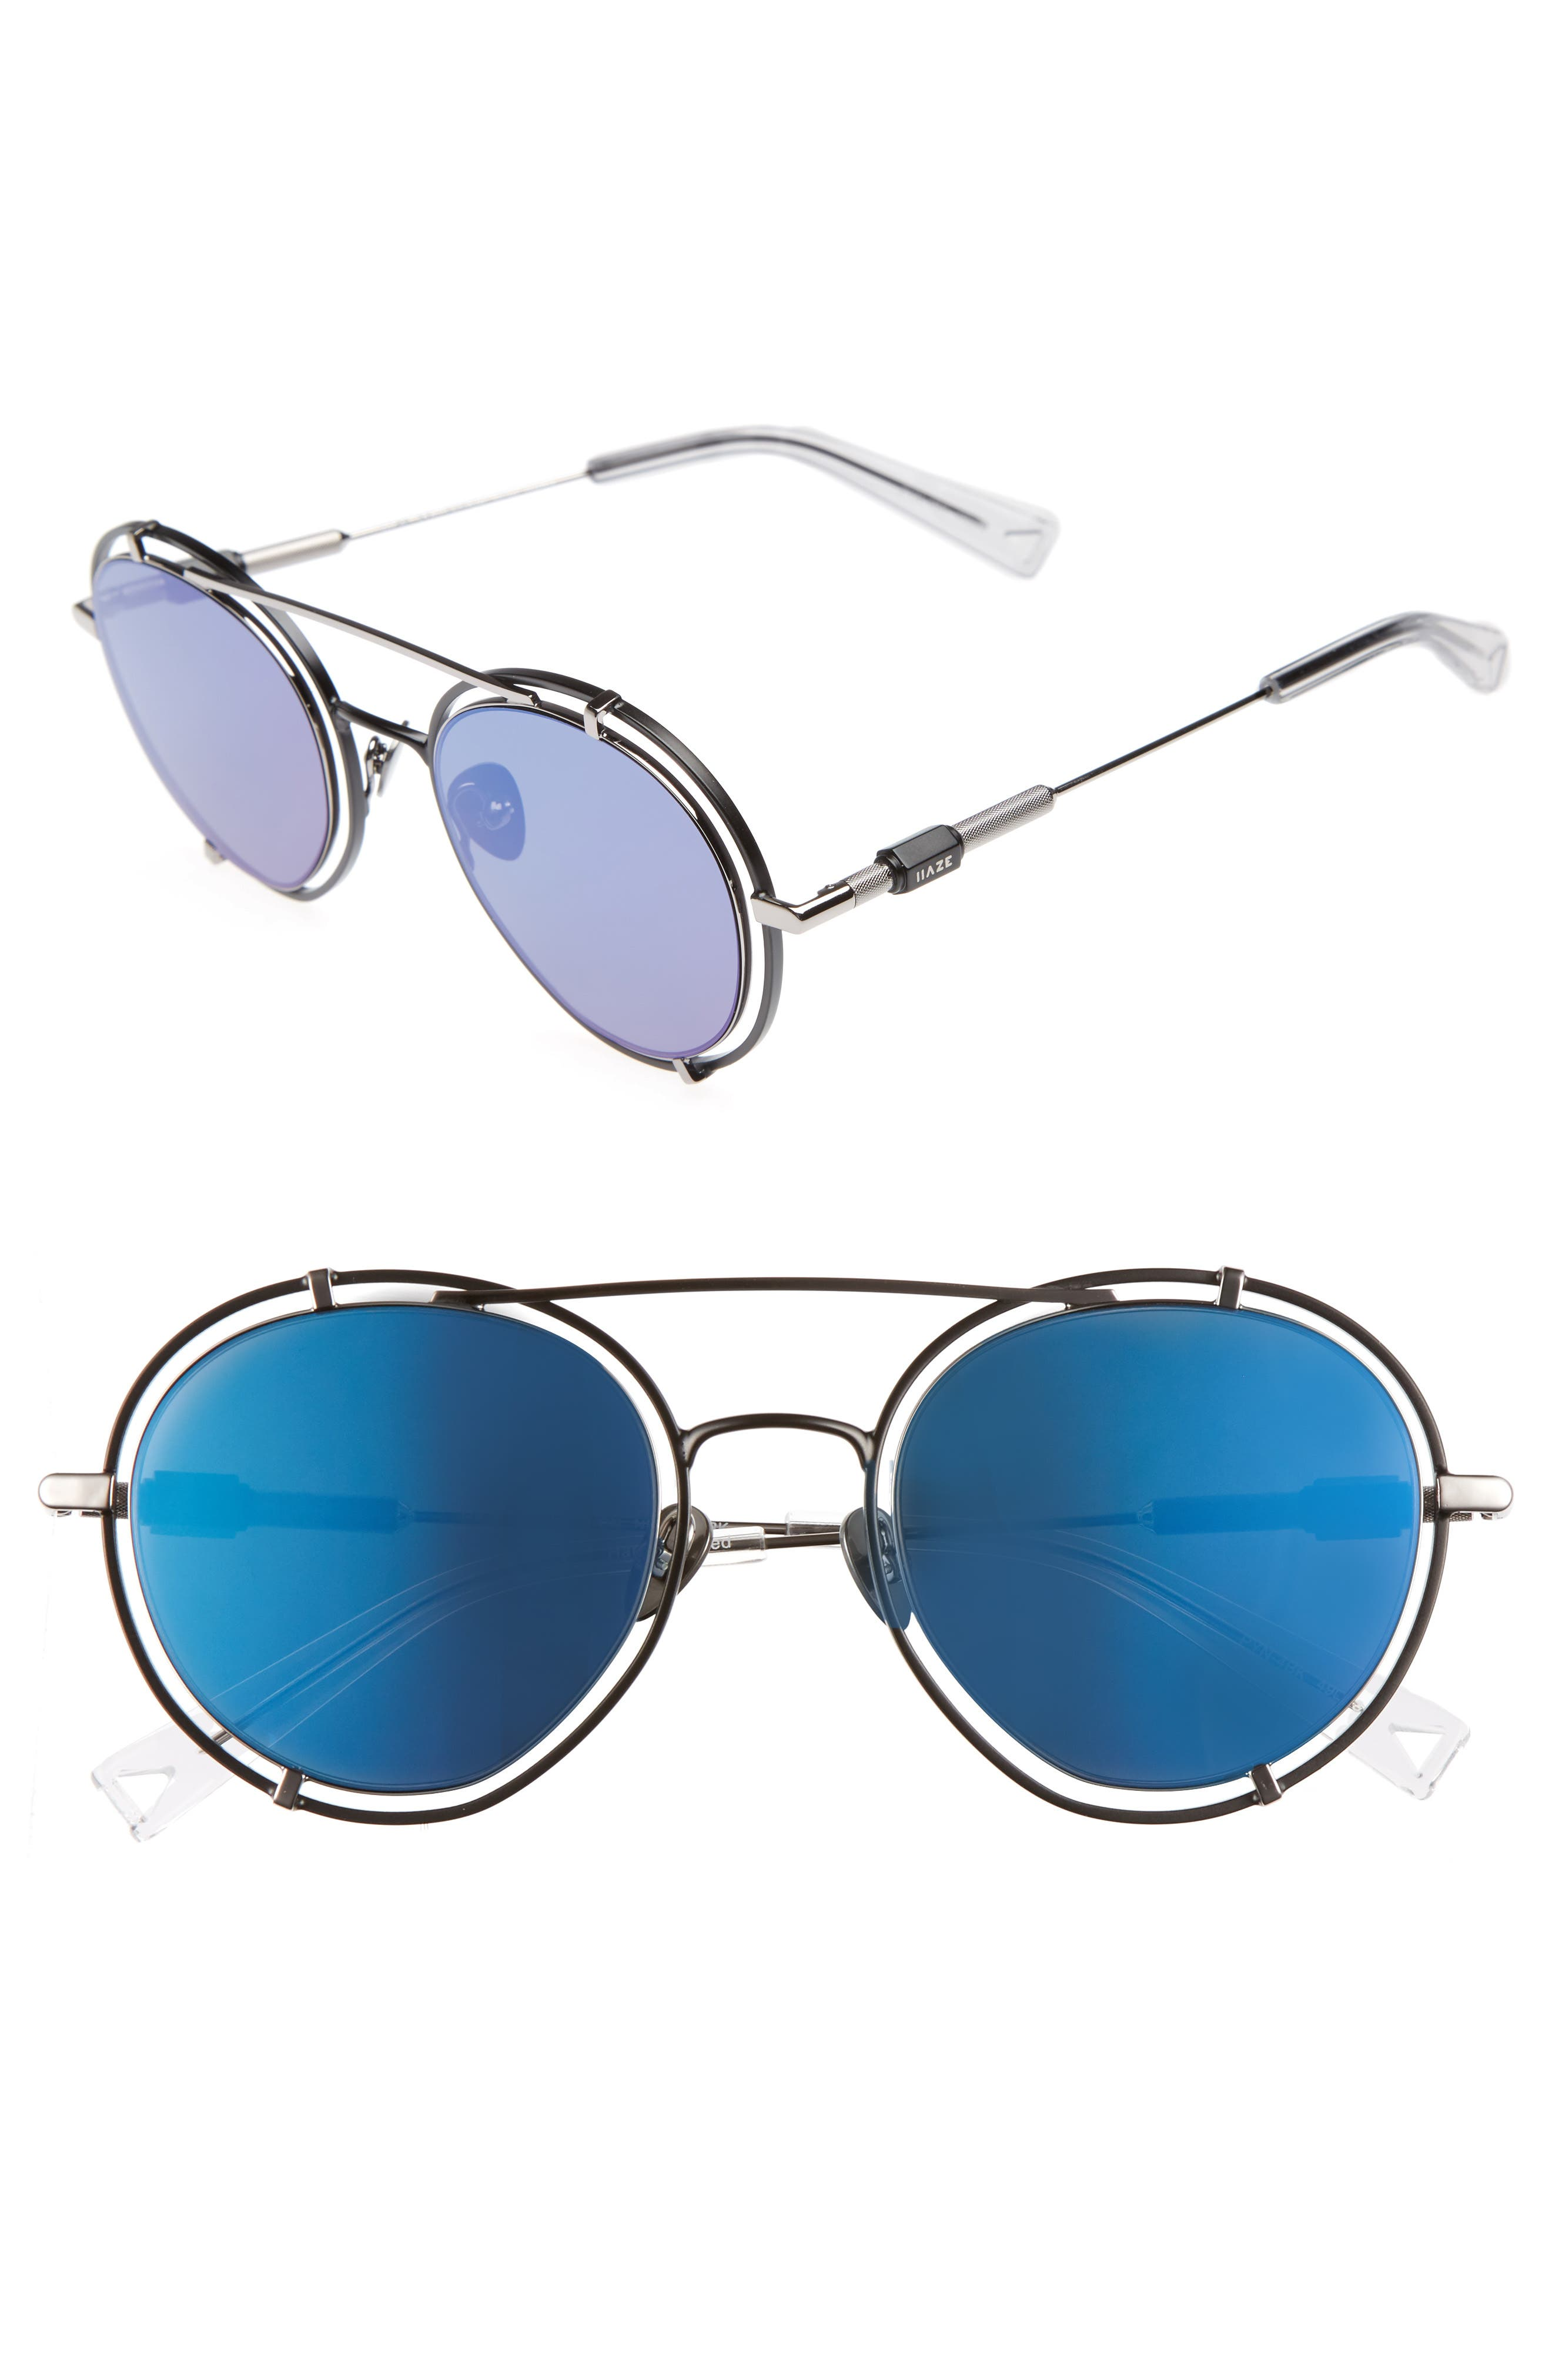 Pyn 55mm Mirrored Sunglasses,                             Main thumbnail 1, color,                             001